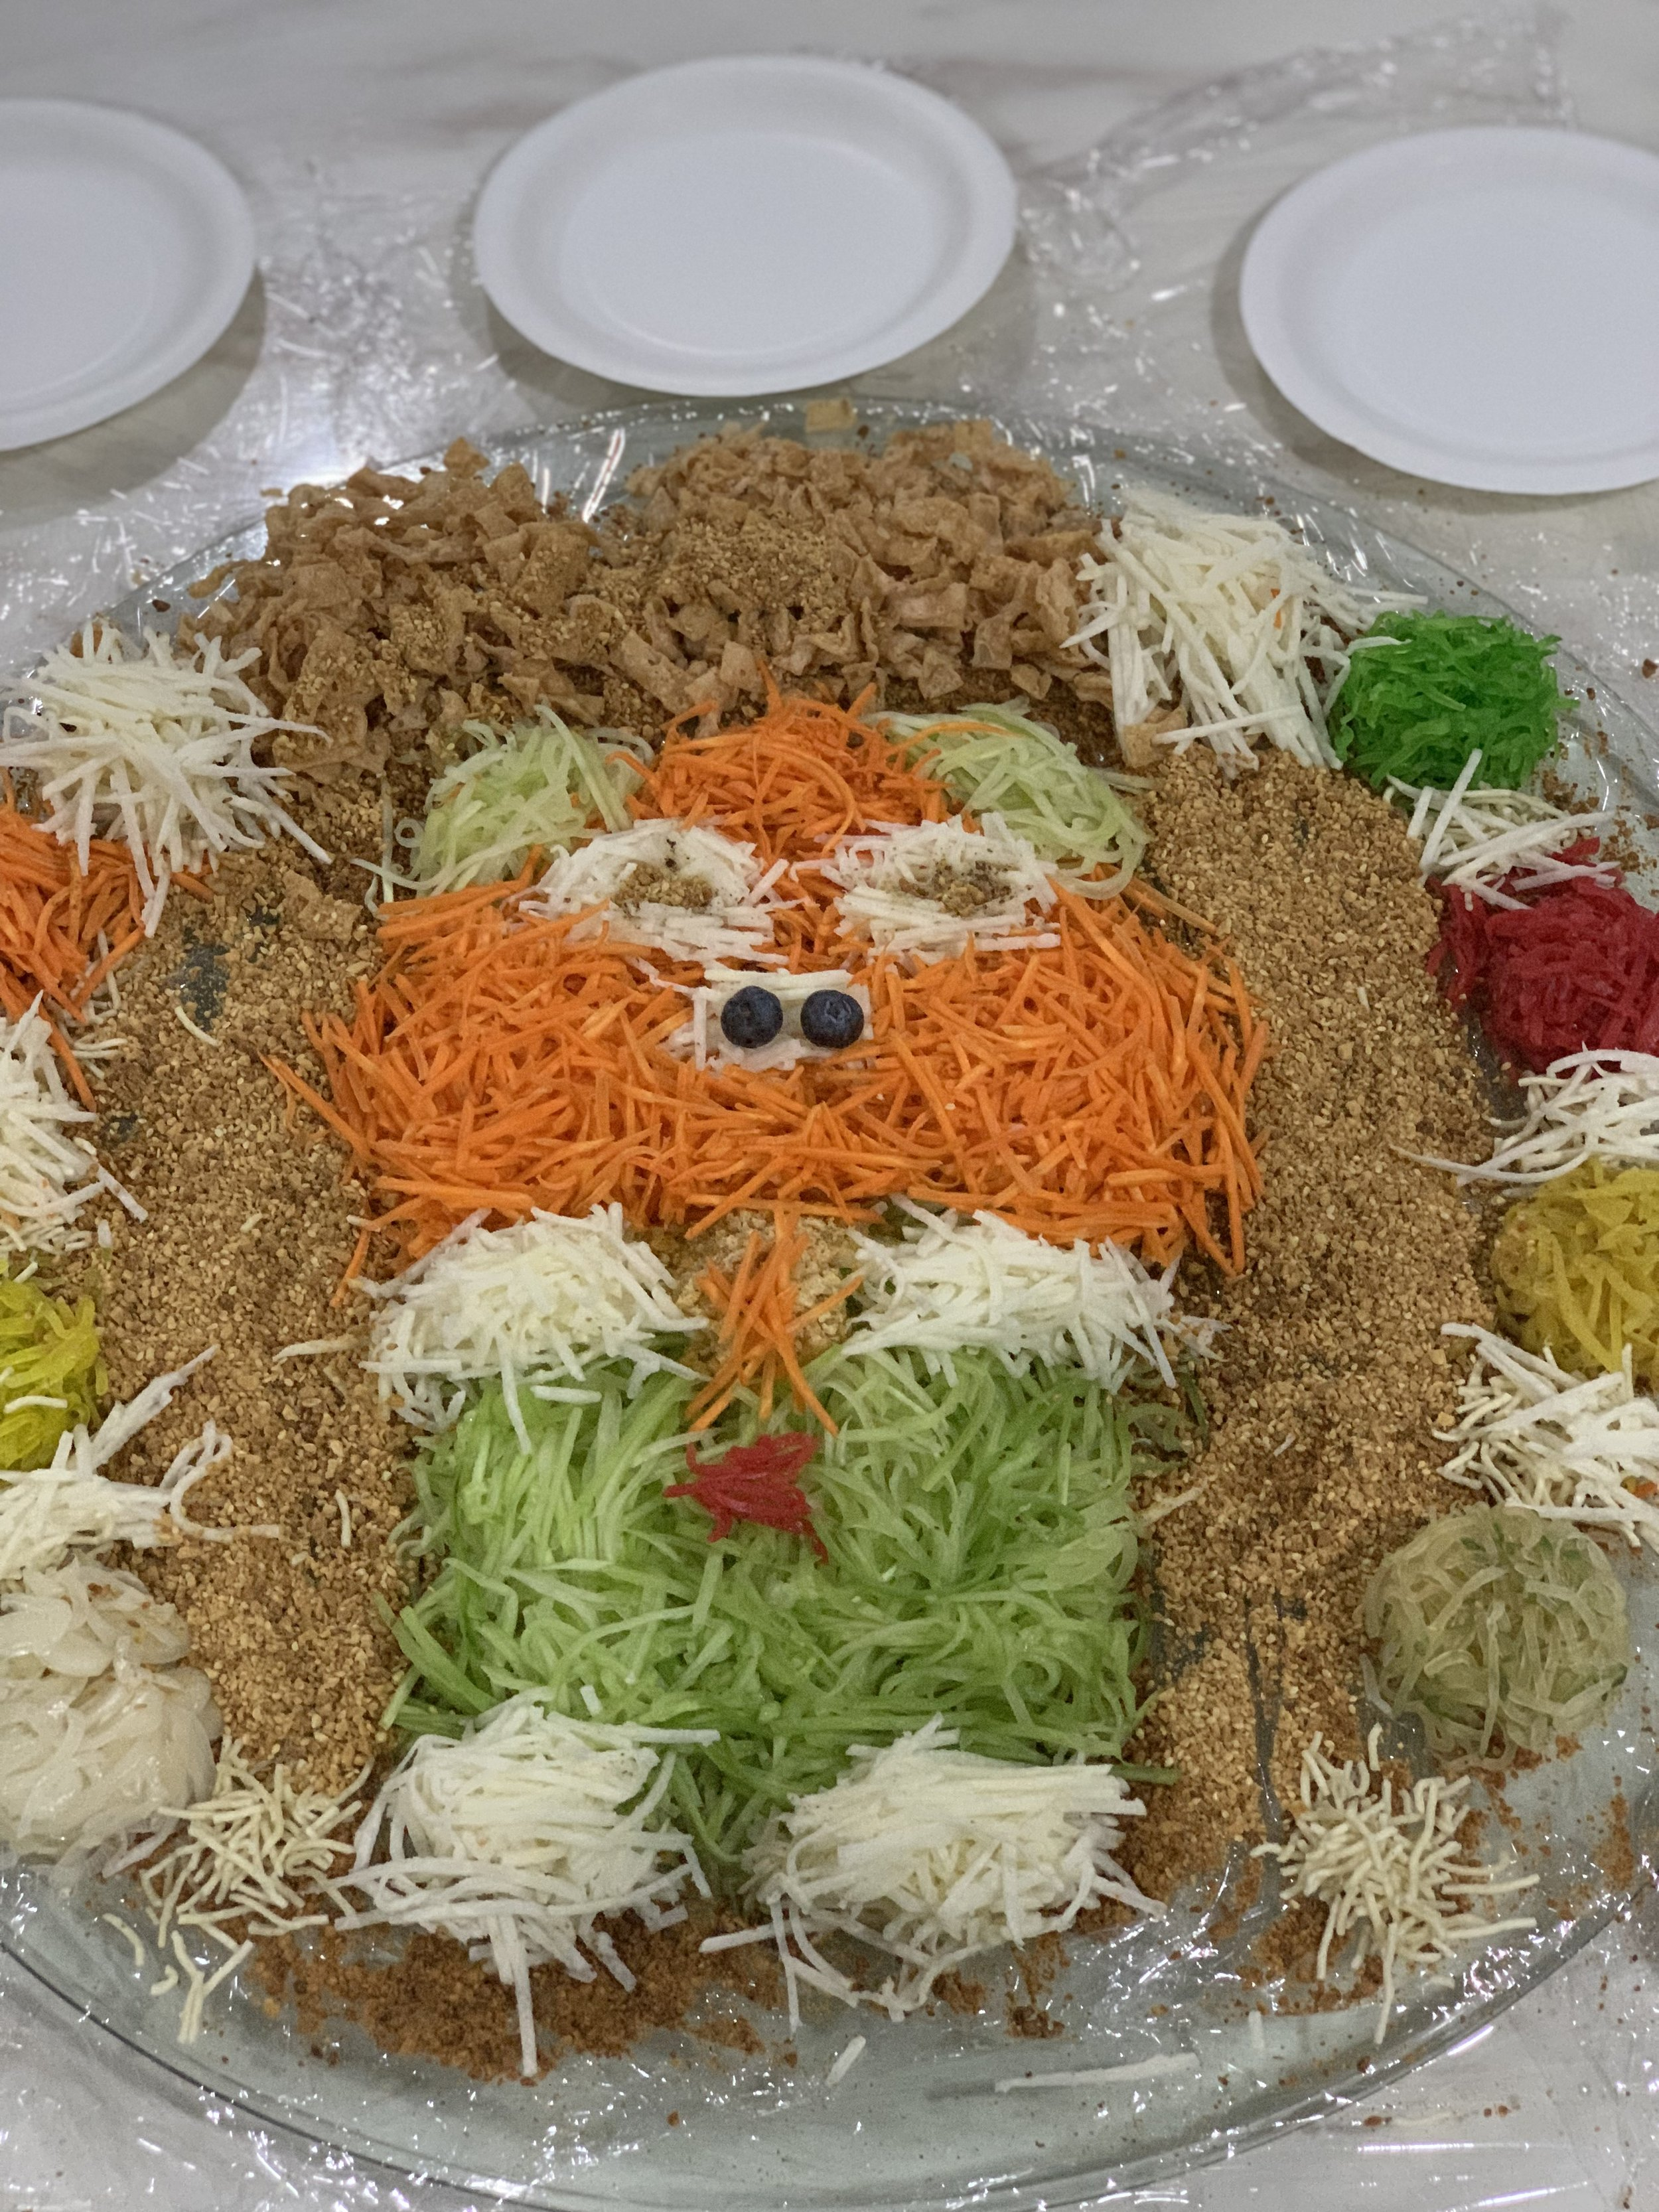 Yee sang (in the shape of a pig for the year of the pig)